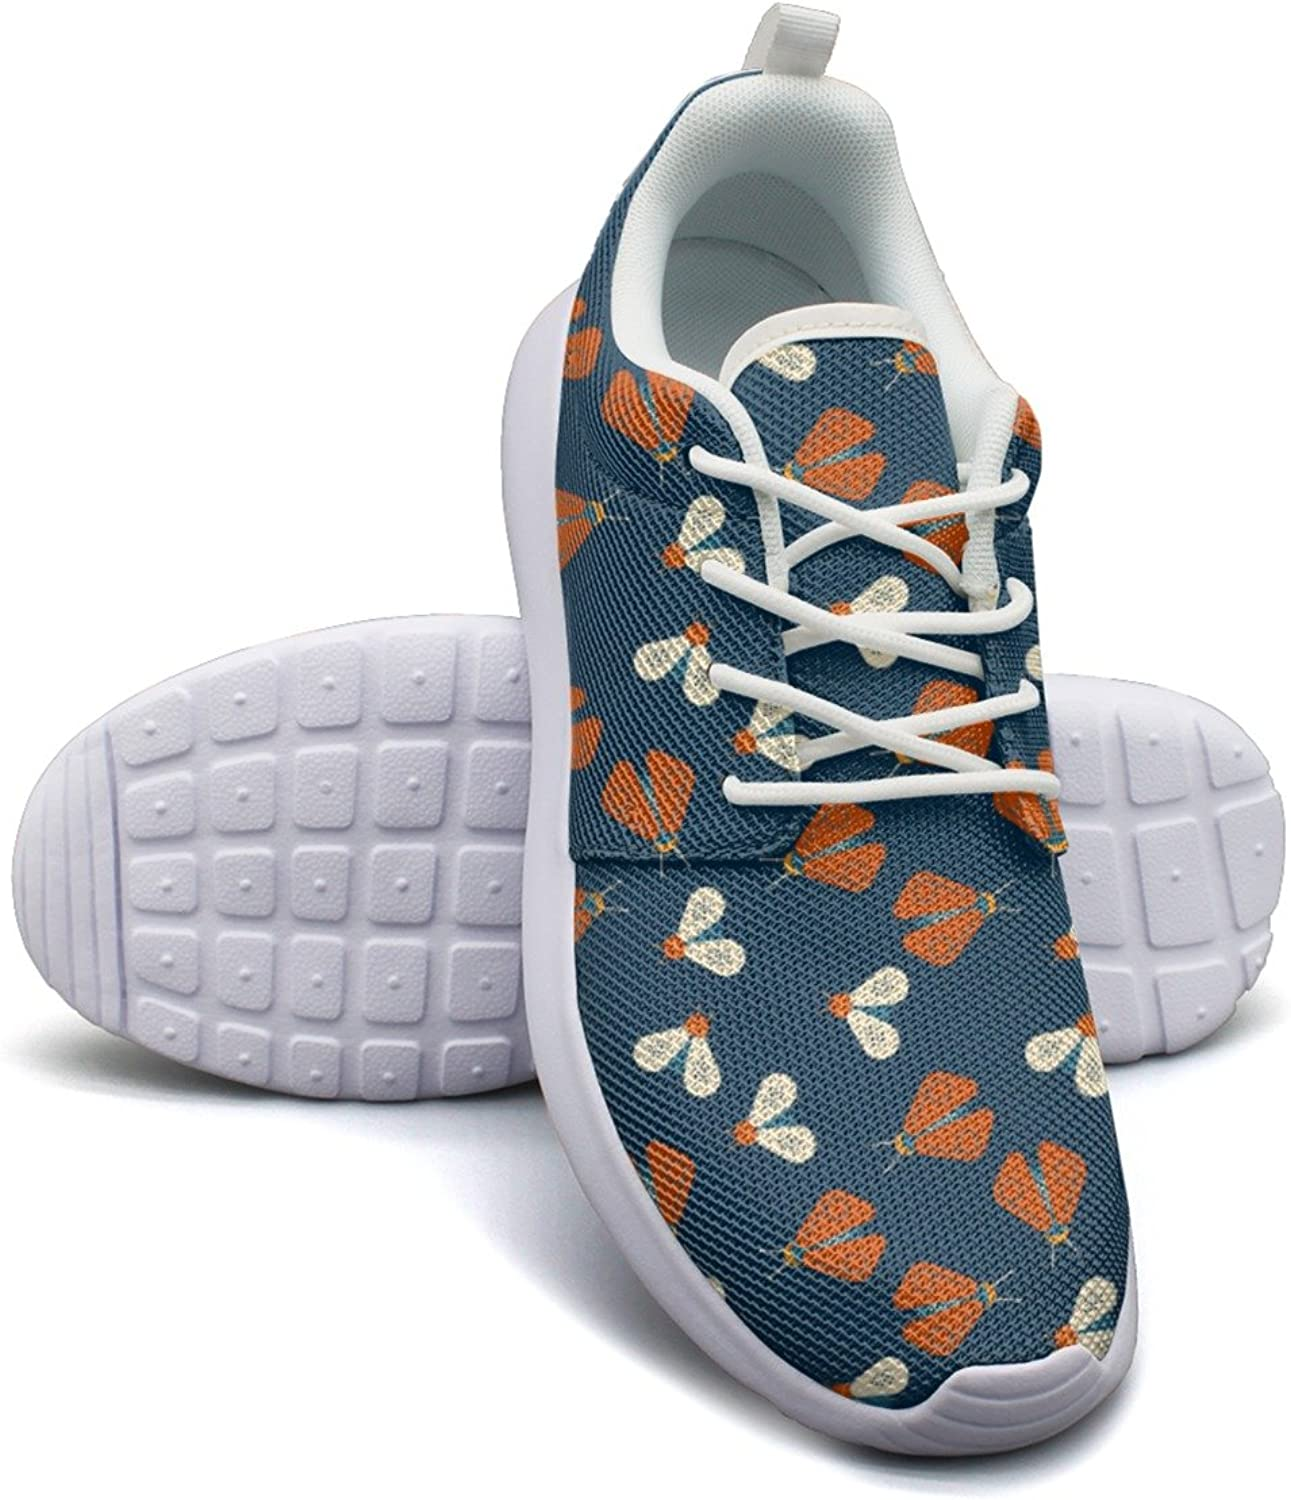 Eoyles gy Firefly and Bee Geometric Woman Slip Resistant Lightweight Running Athletic shoes